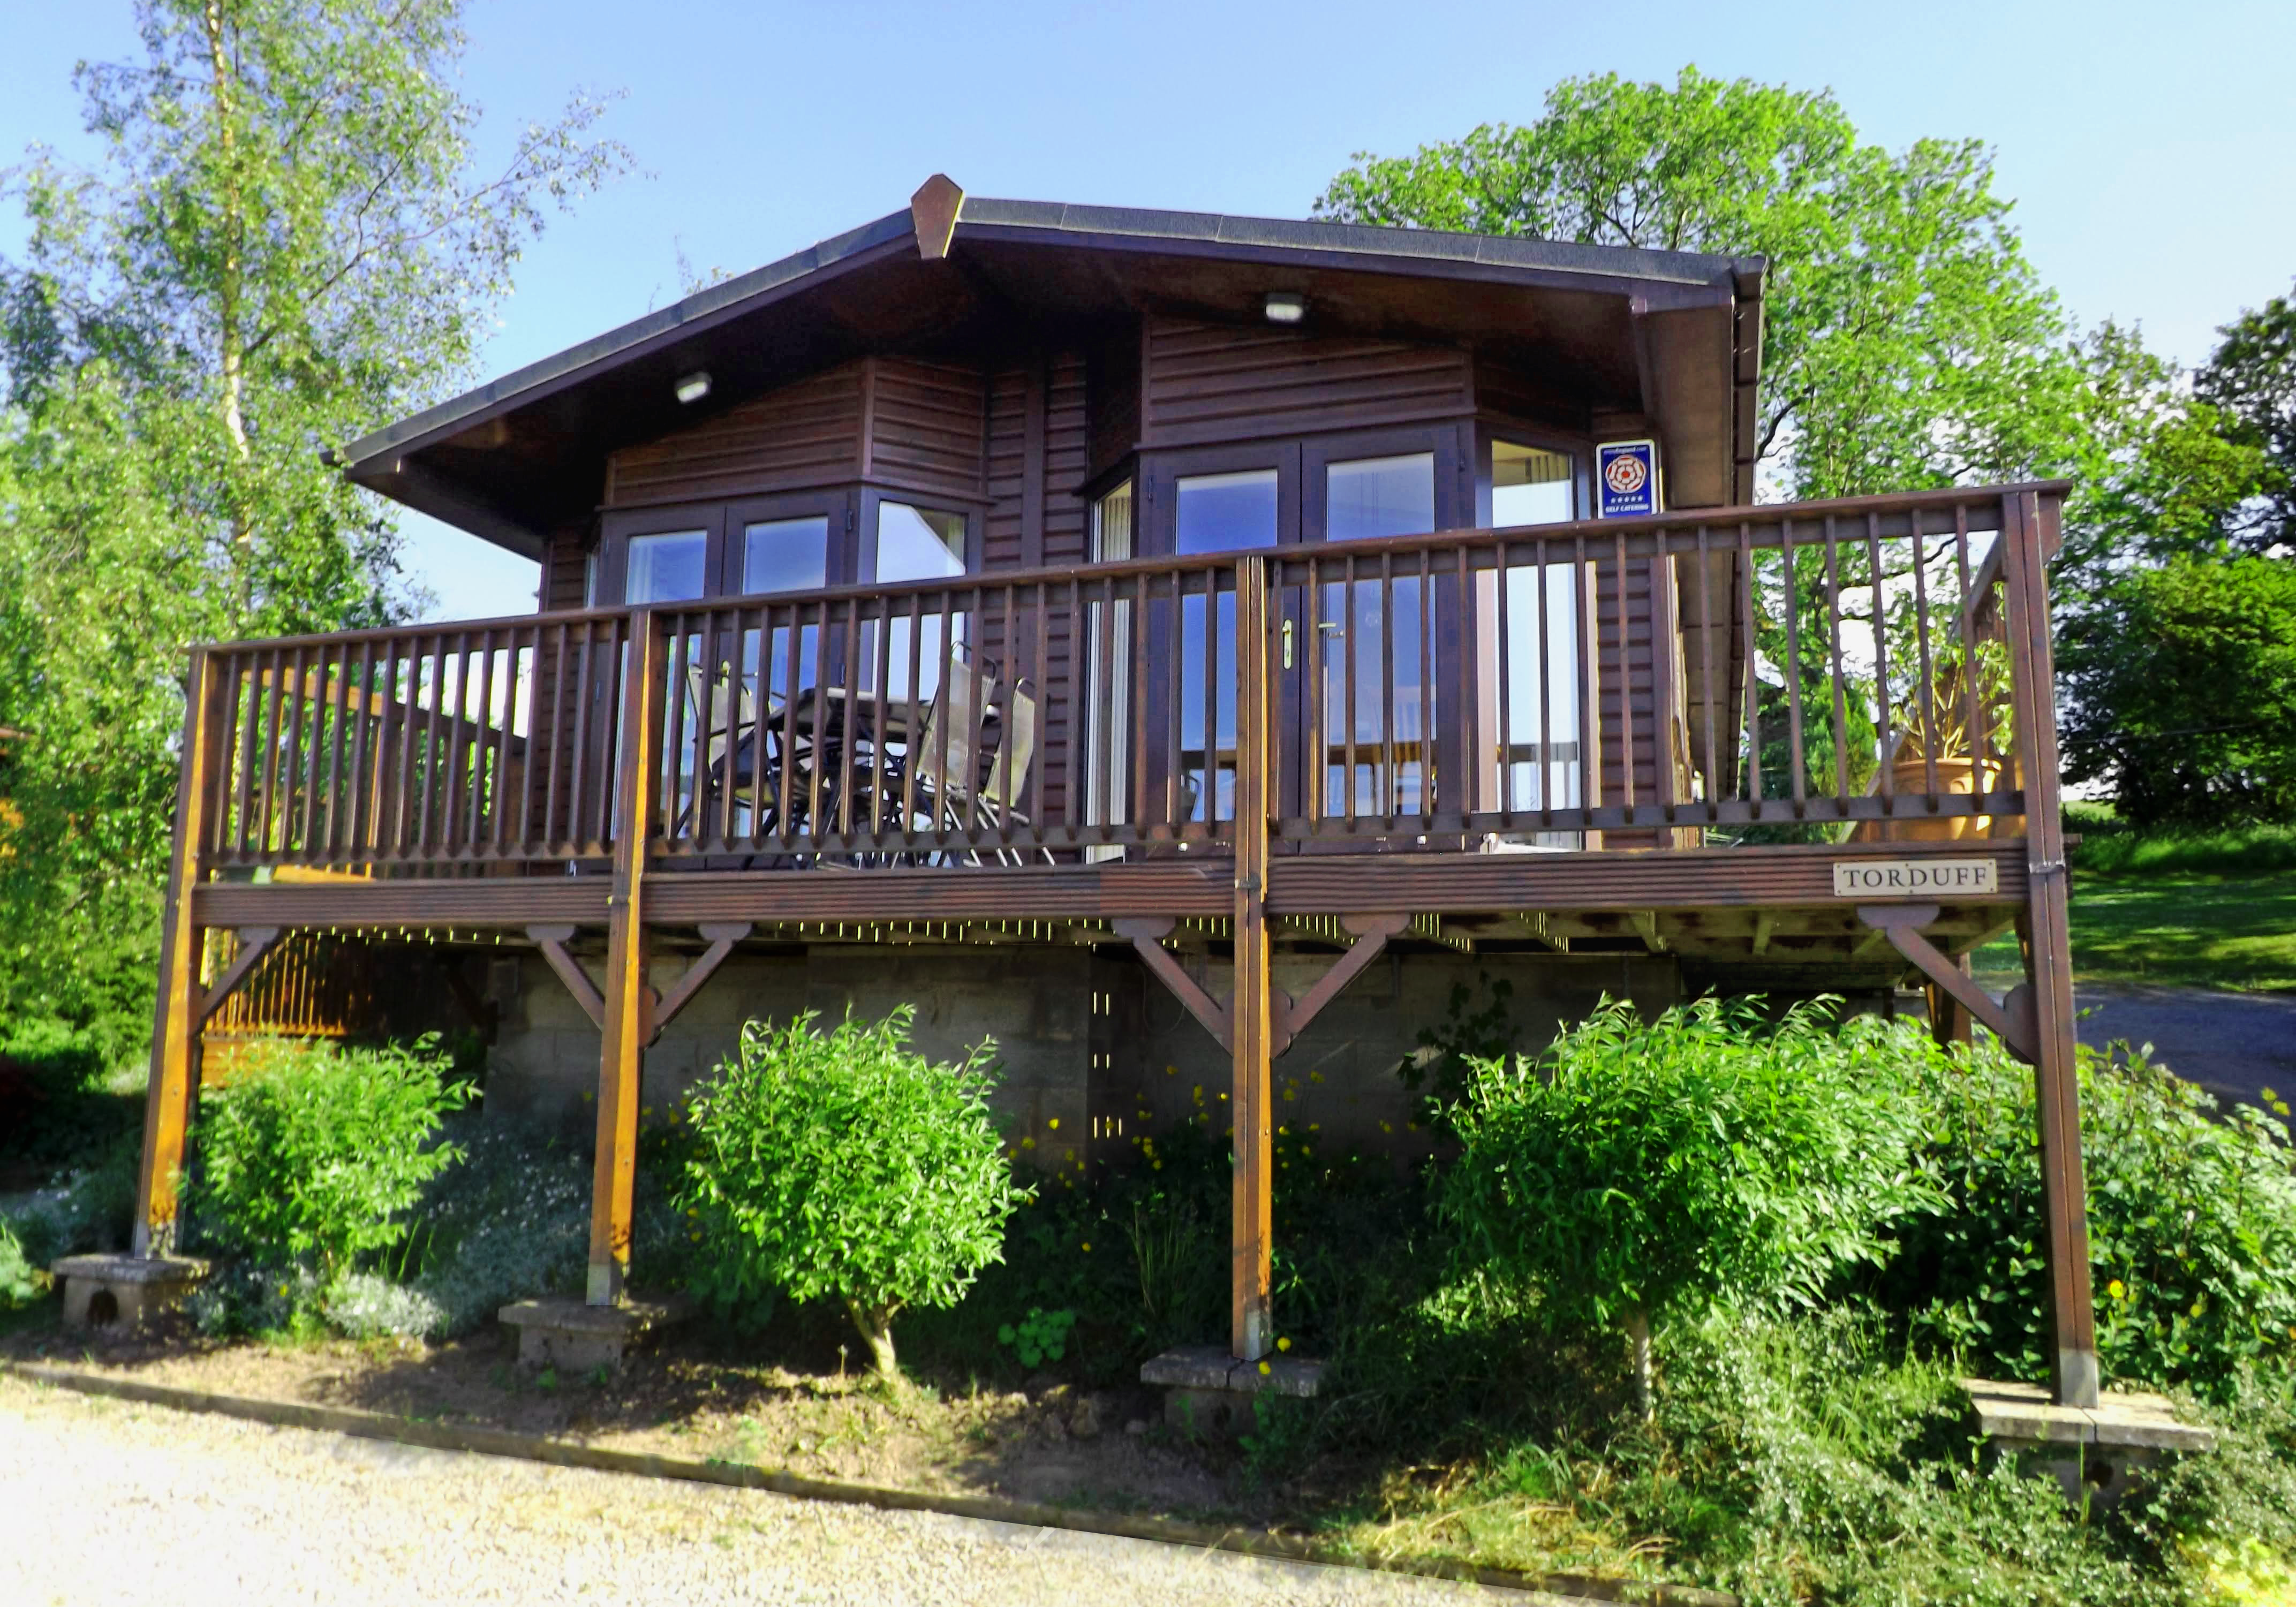 Pleasing Luxury Five Star Lodges Lodges With Hot Tubs Lake District Download Free Architecture Designs Crovemadebymaigaardcom